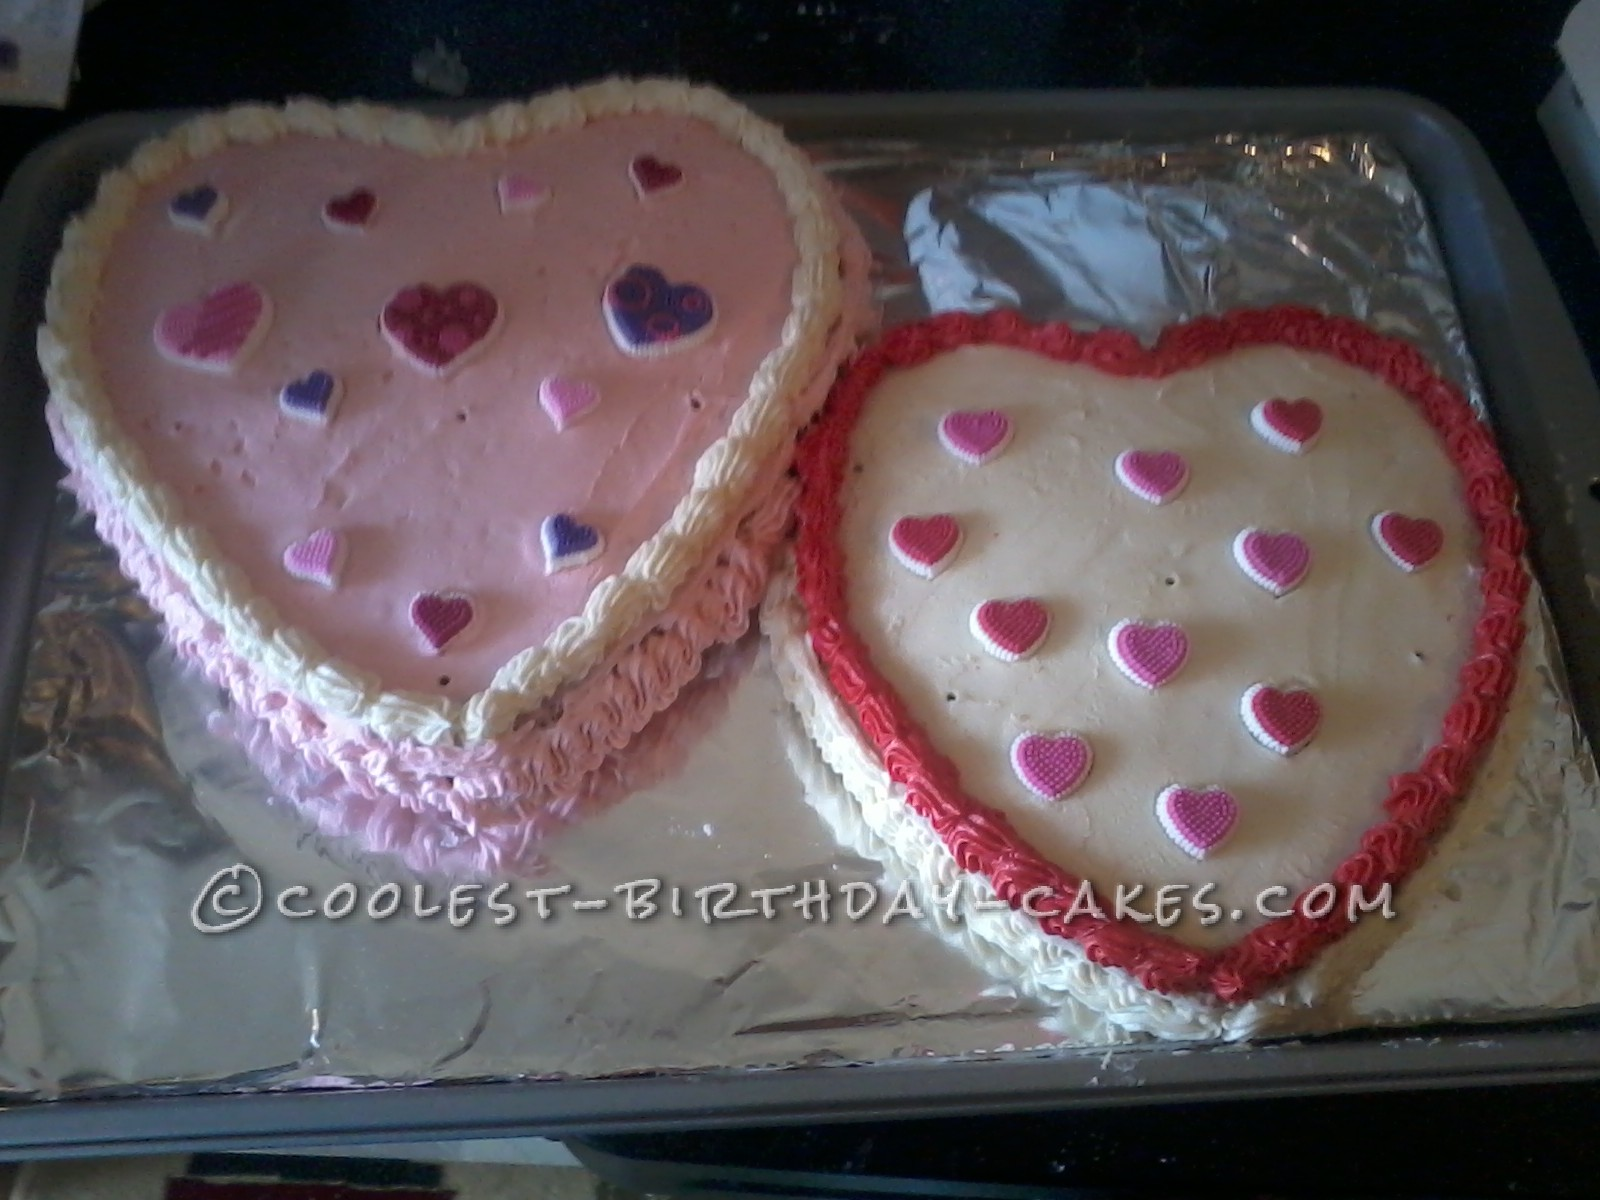 Valentines Day Cakes Using Heart Shaped Cake Pans